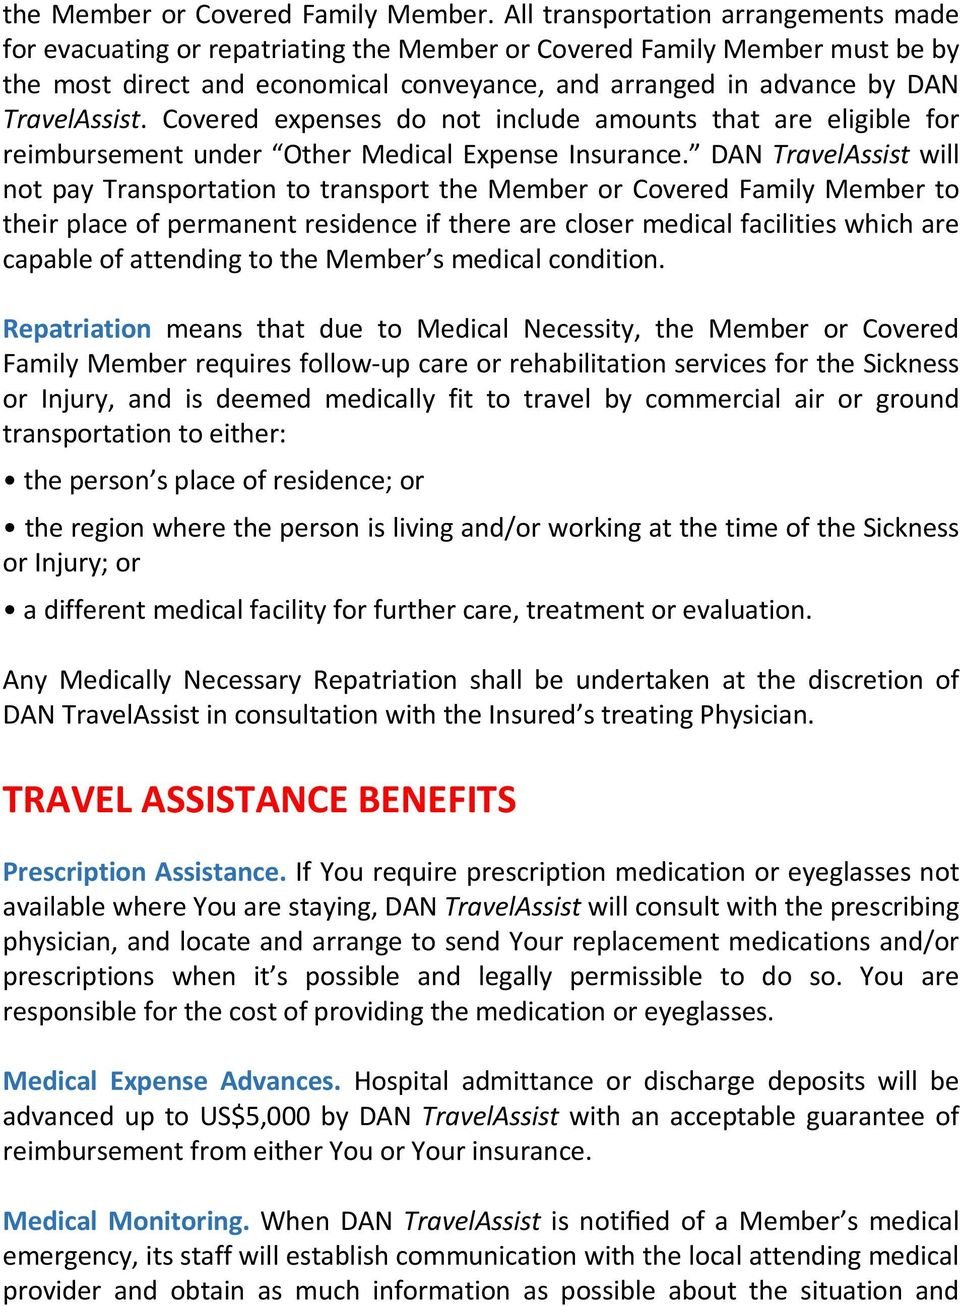 TravelAssist. Covered expenses do not include amounts that are eligible for reimbursement under Other Medical Expense Insurance.